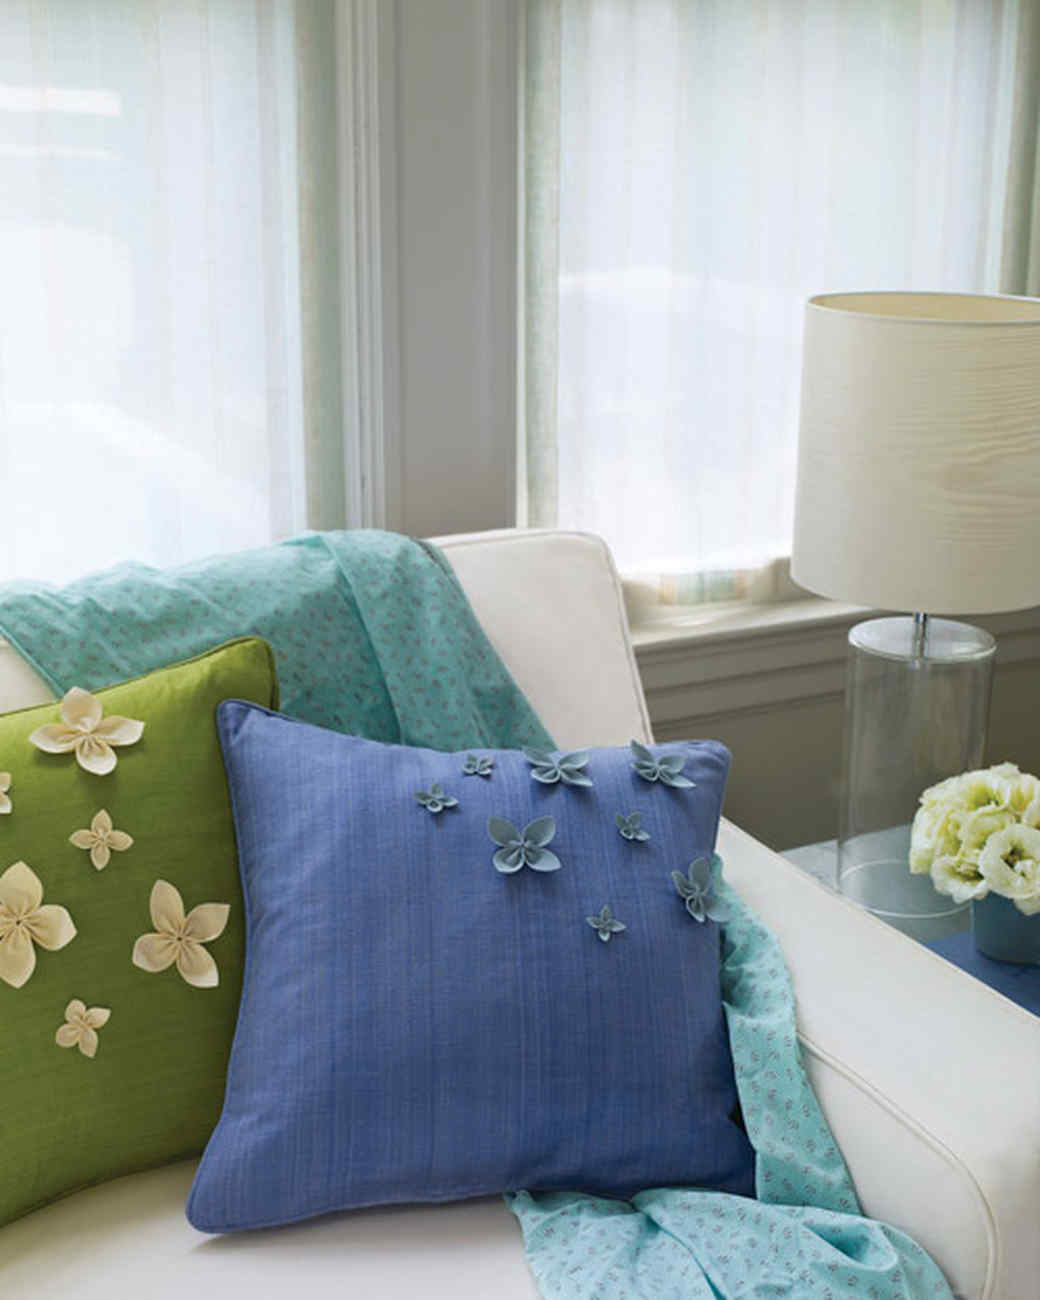 Floral Pillows with Ultrasuede Petals